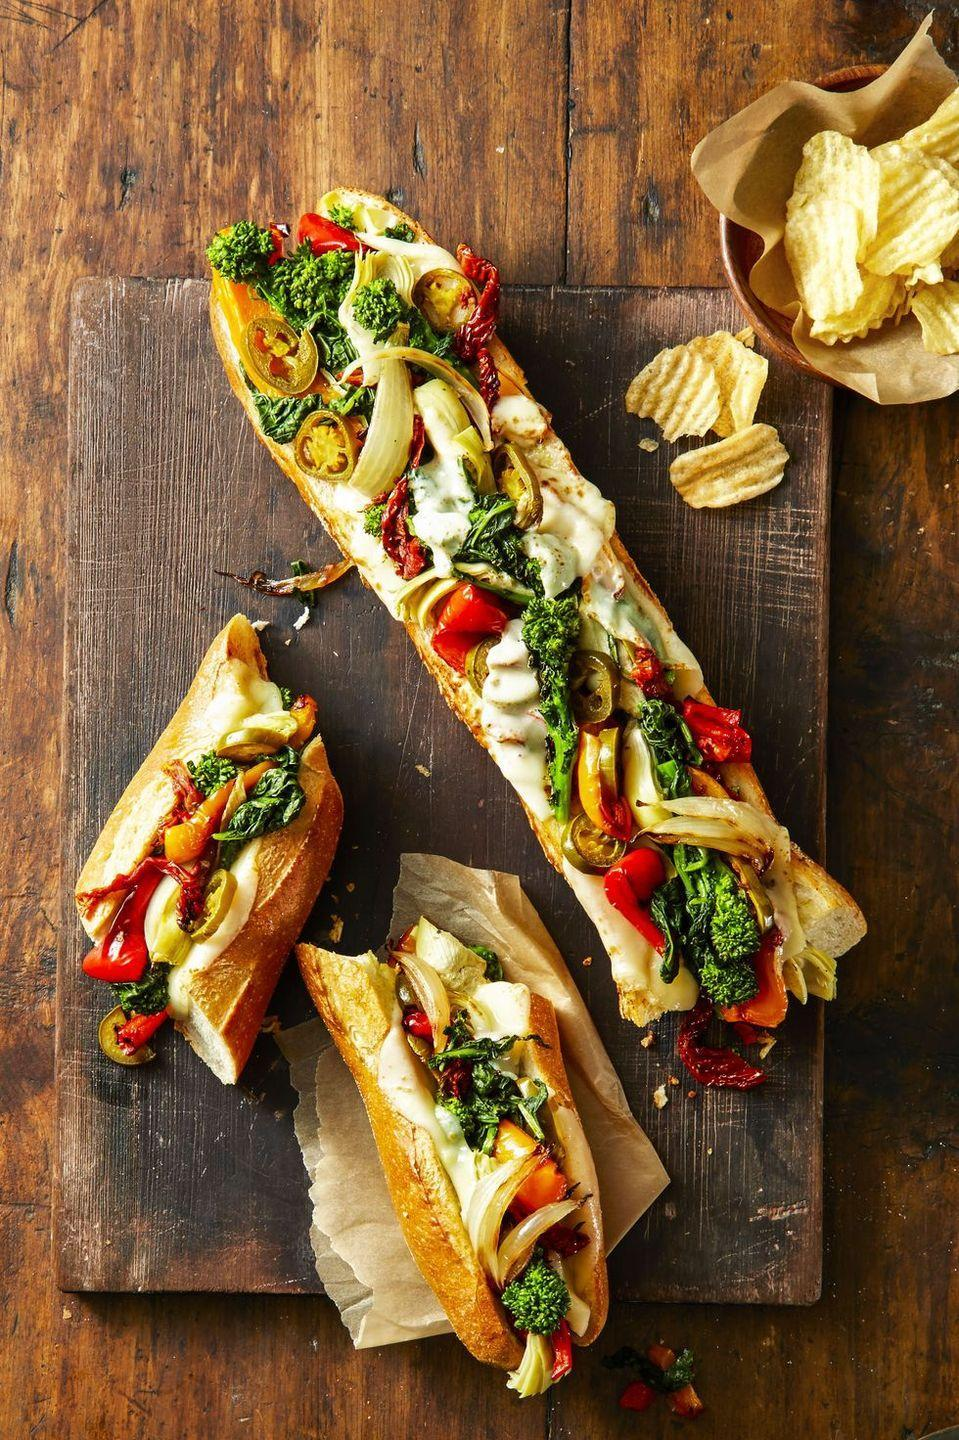 "<p>Instead of blanching broccolini, roast with the other veggies. Who knew dinner for a crowd could be so simple (and so tasty)?</p><p><em><a href=""https://www.goodhousekeeping.com/food-recipes/a42217/provolone-veggie-party-subs-recipe/"" rel=""nofollow noopener"" target=""_blank"" data-ylk=""slk:Get the recipe for Provolone Veggie Party Subs »"" class=""link rapid-noclick-resp"">Get the recipe for Provolone Veggie Party Subs »</a></em><br></p>"